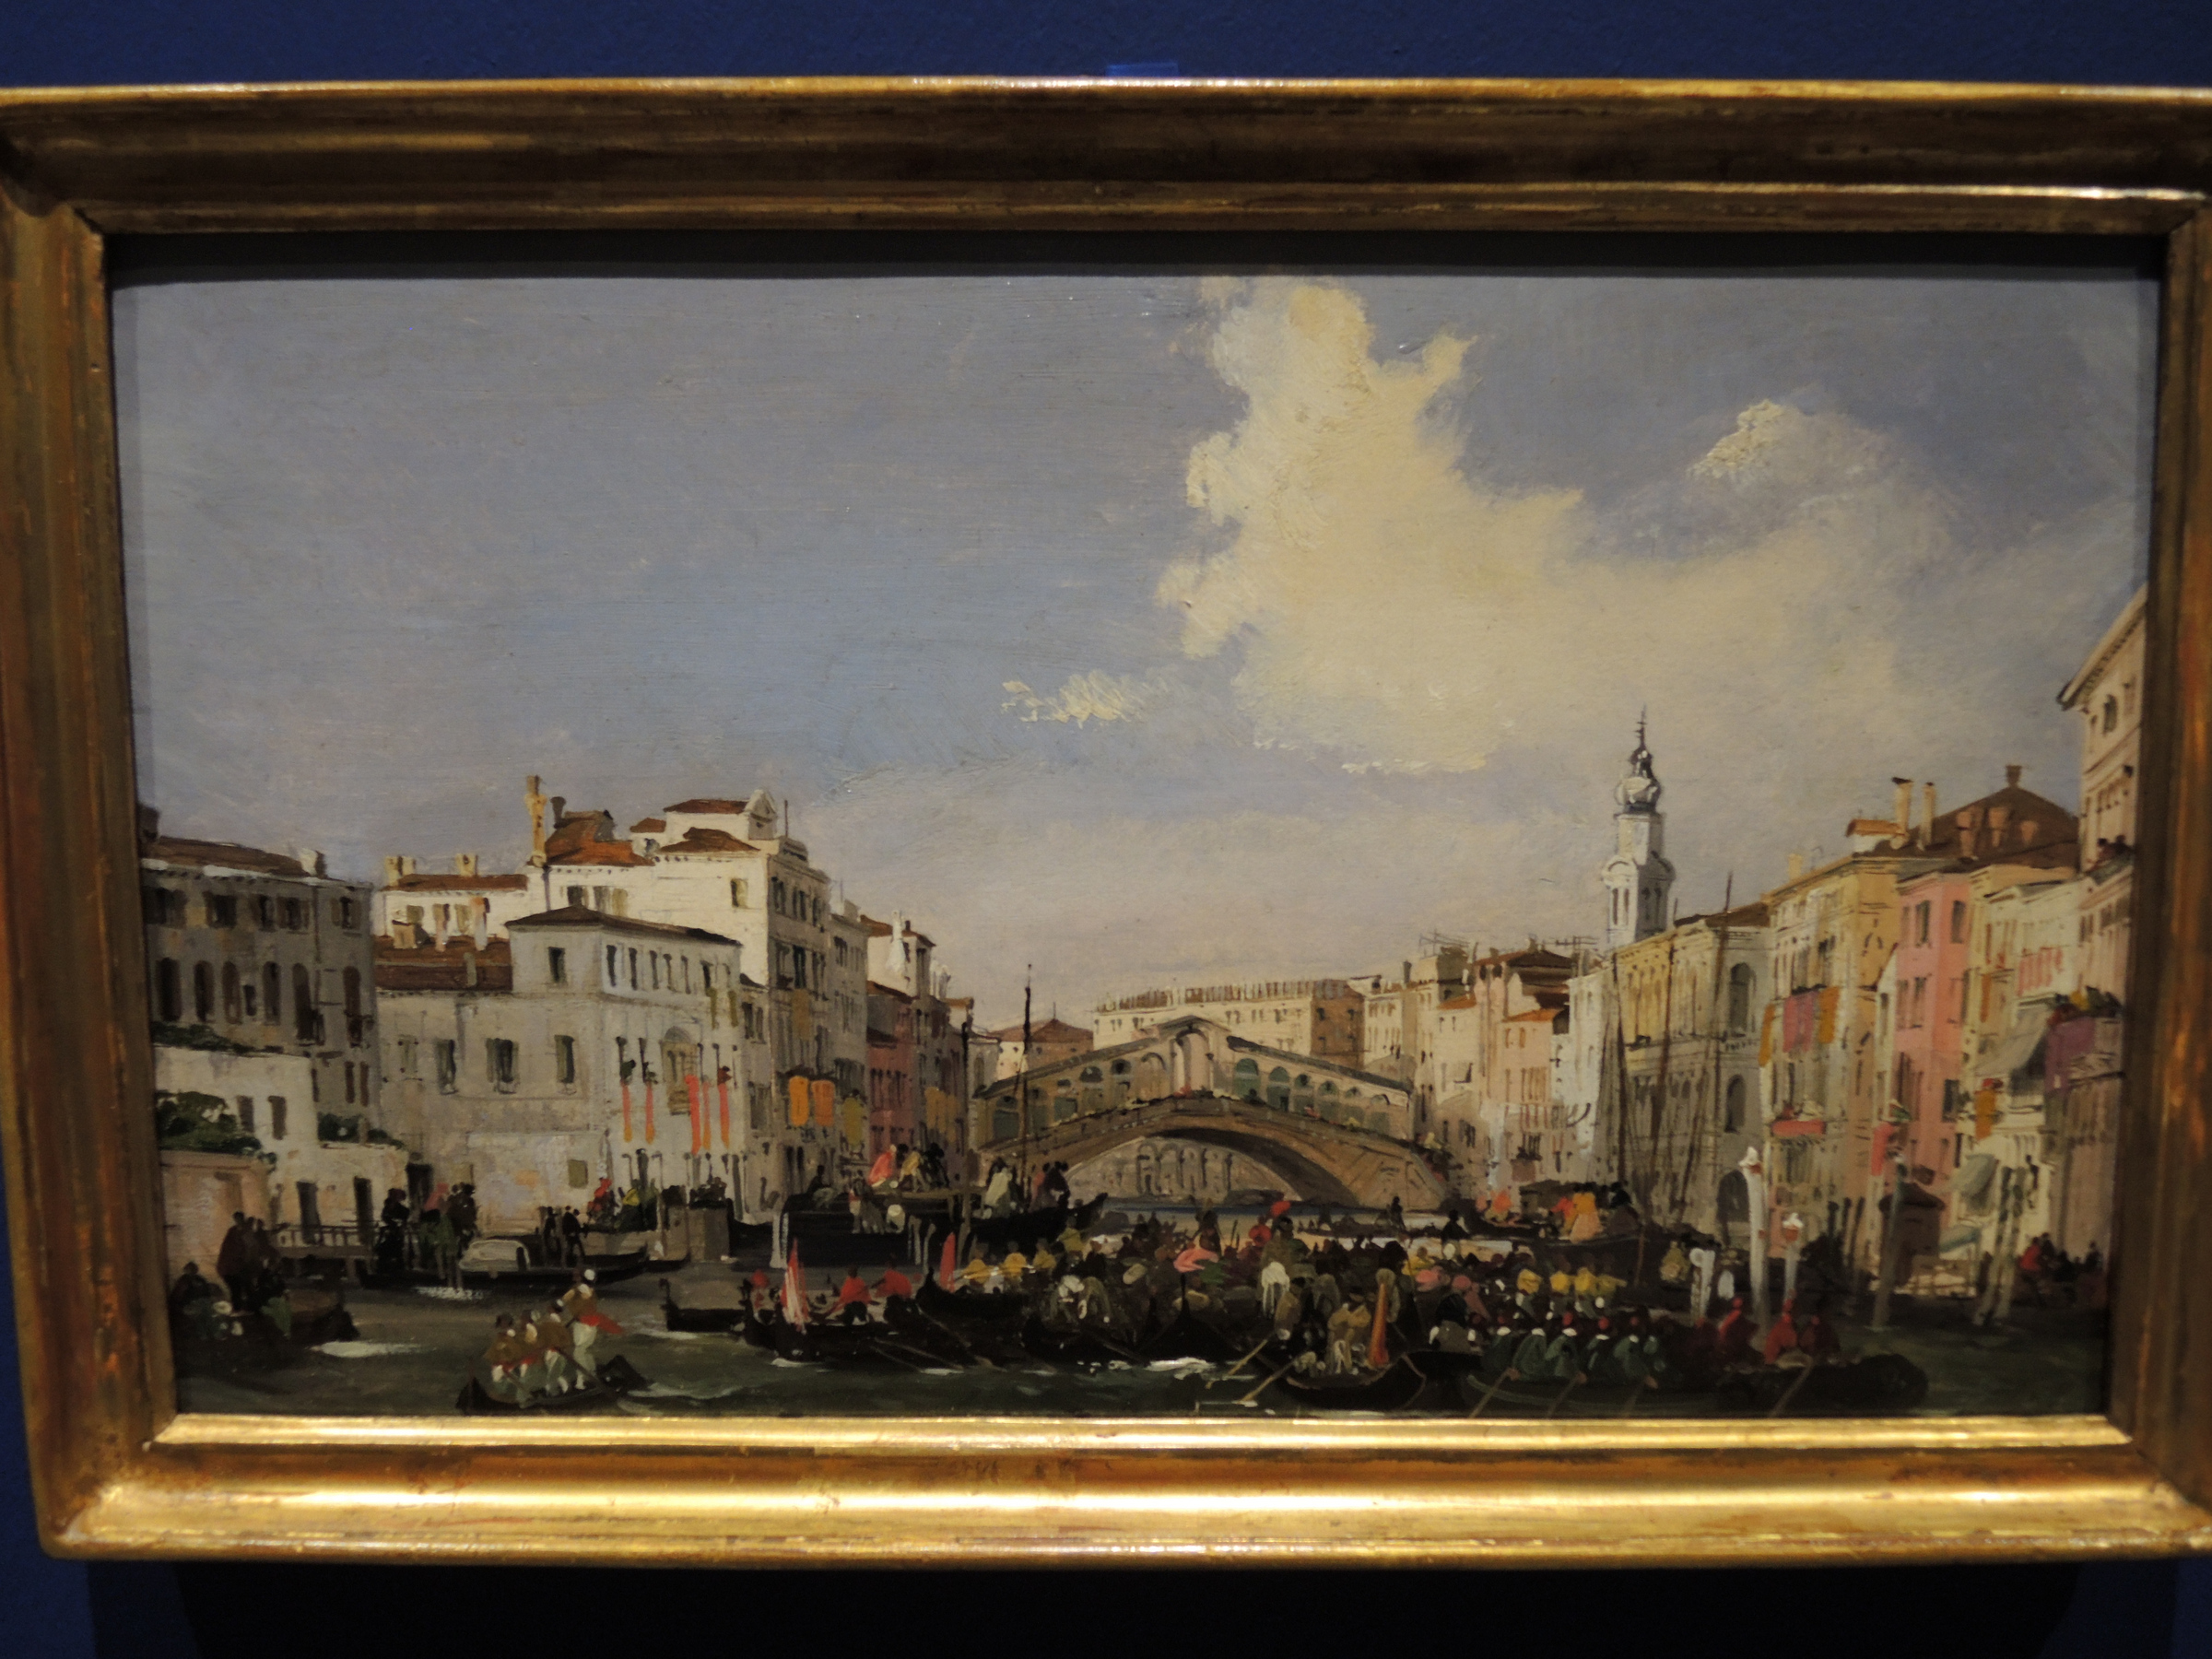 Venice, regatta on the Gran Canal - 1848